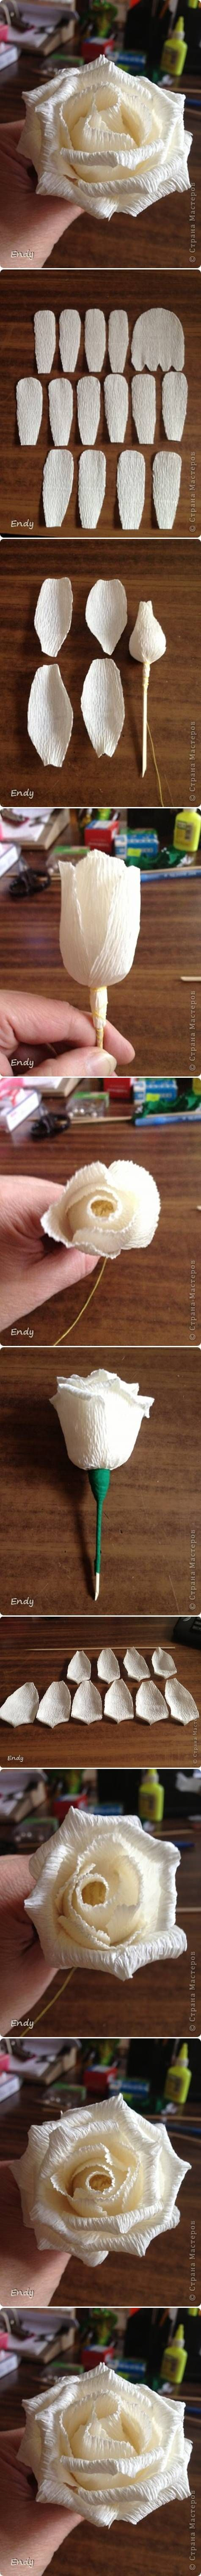 "<input+type=""hidden""+value=""""+data-frizzlyPostContainer=""""+data-frizzlyPostUrl=""http://www.usefuldiy.com/diy-easy-corrugated-paper-rose/""+data-frizzlyPostTitle=""DIY+Easy+Corrugated+Paper+Rose""+data-frizzlyHoverContainer=""""><p>>>>+Craft+Tutorials+More+Free+Instructions+Free+Tutorials+More+Craft+Tutorials</p>"